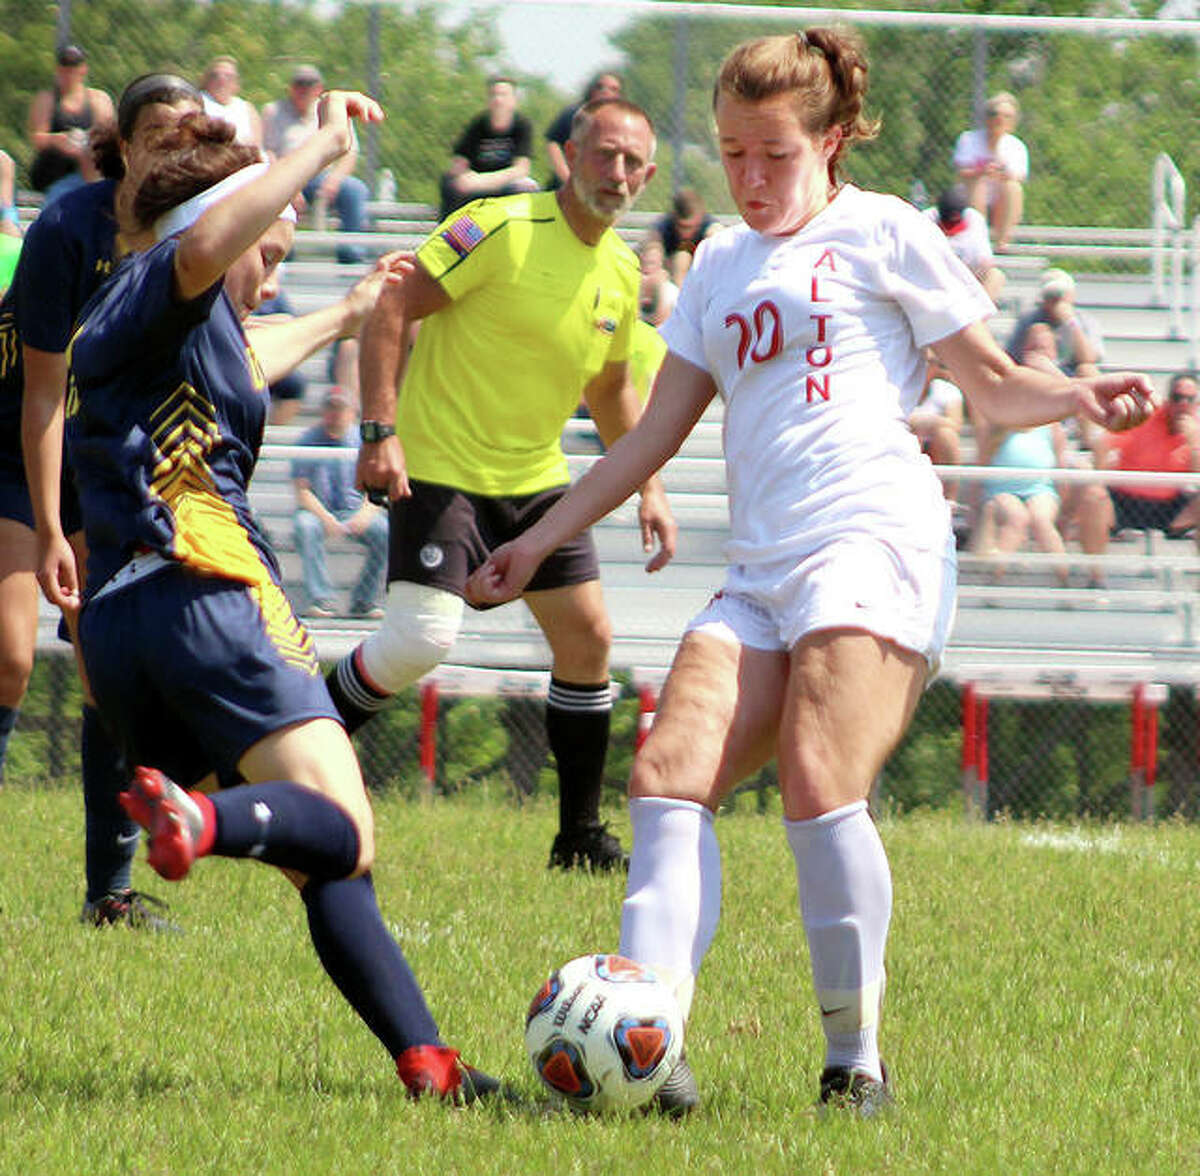 Sydney Brunaugh of Alton, right, scored three goals and added an assist in Tuesday night's 11-0 Class 3A regional win over Springfield Southeast.